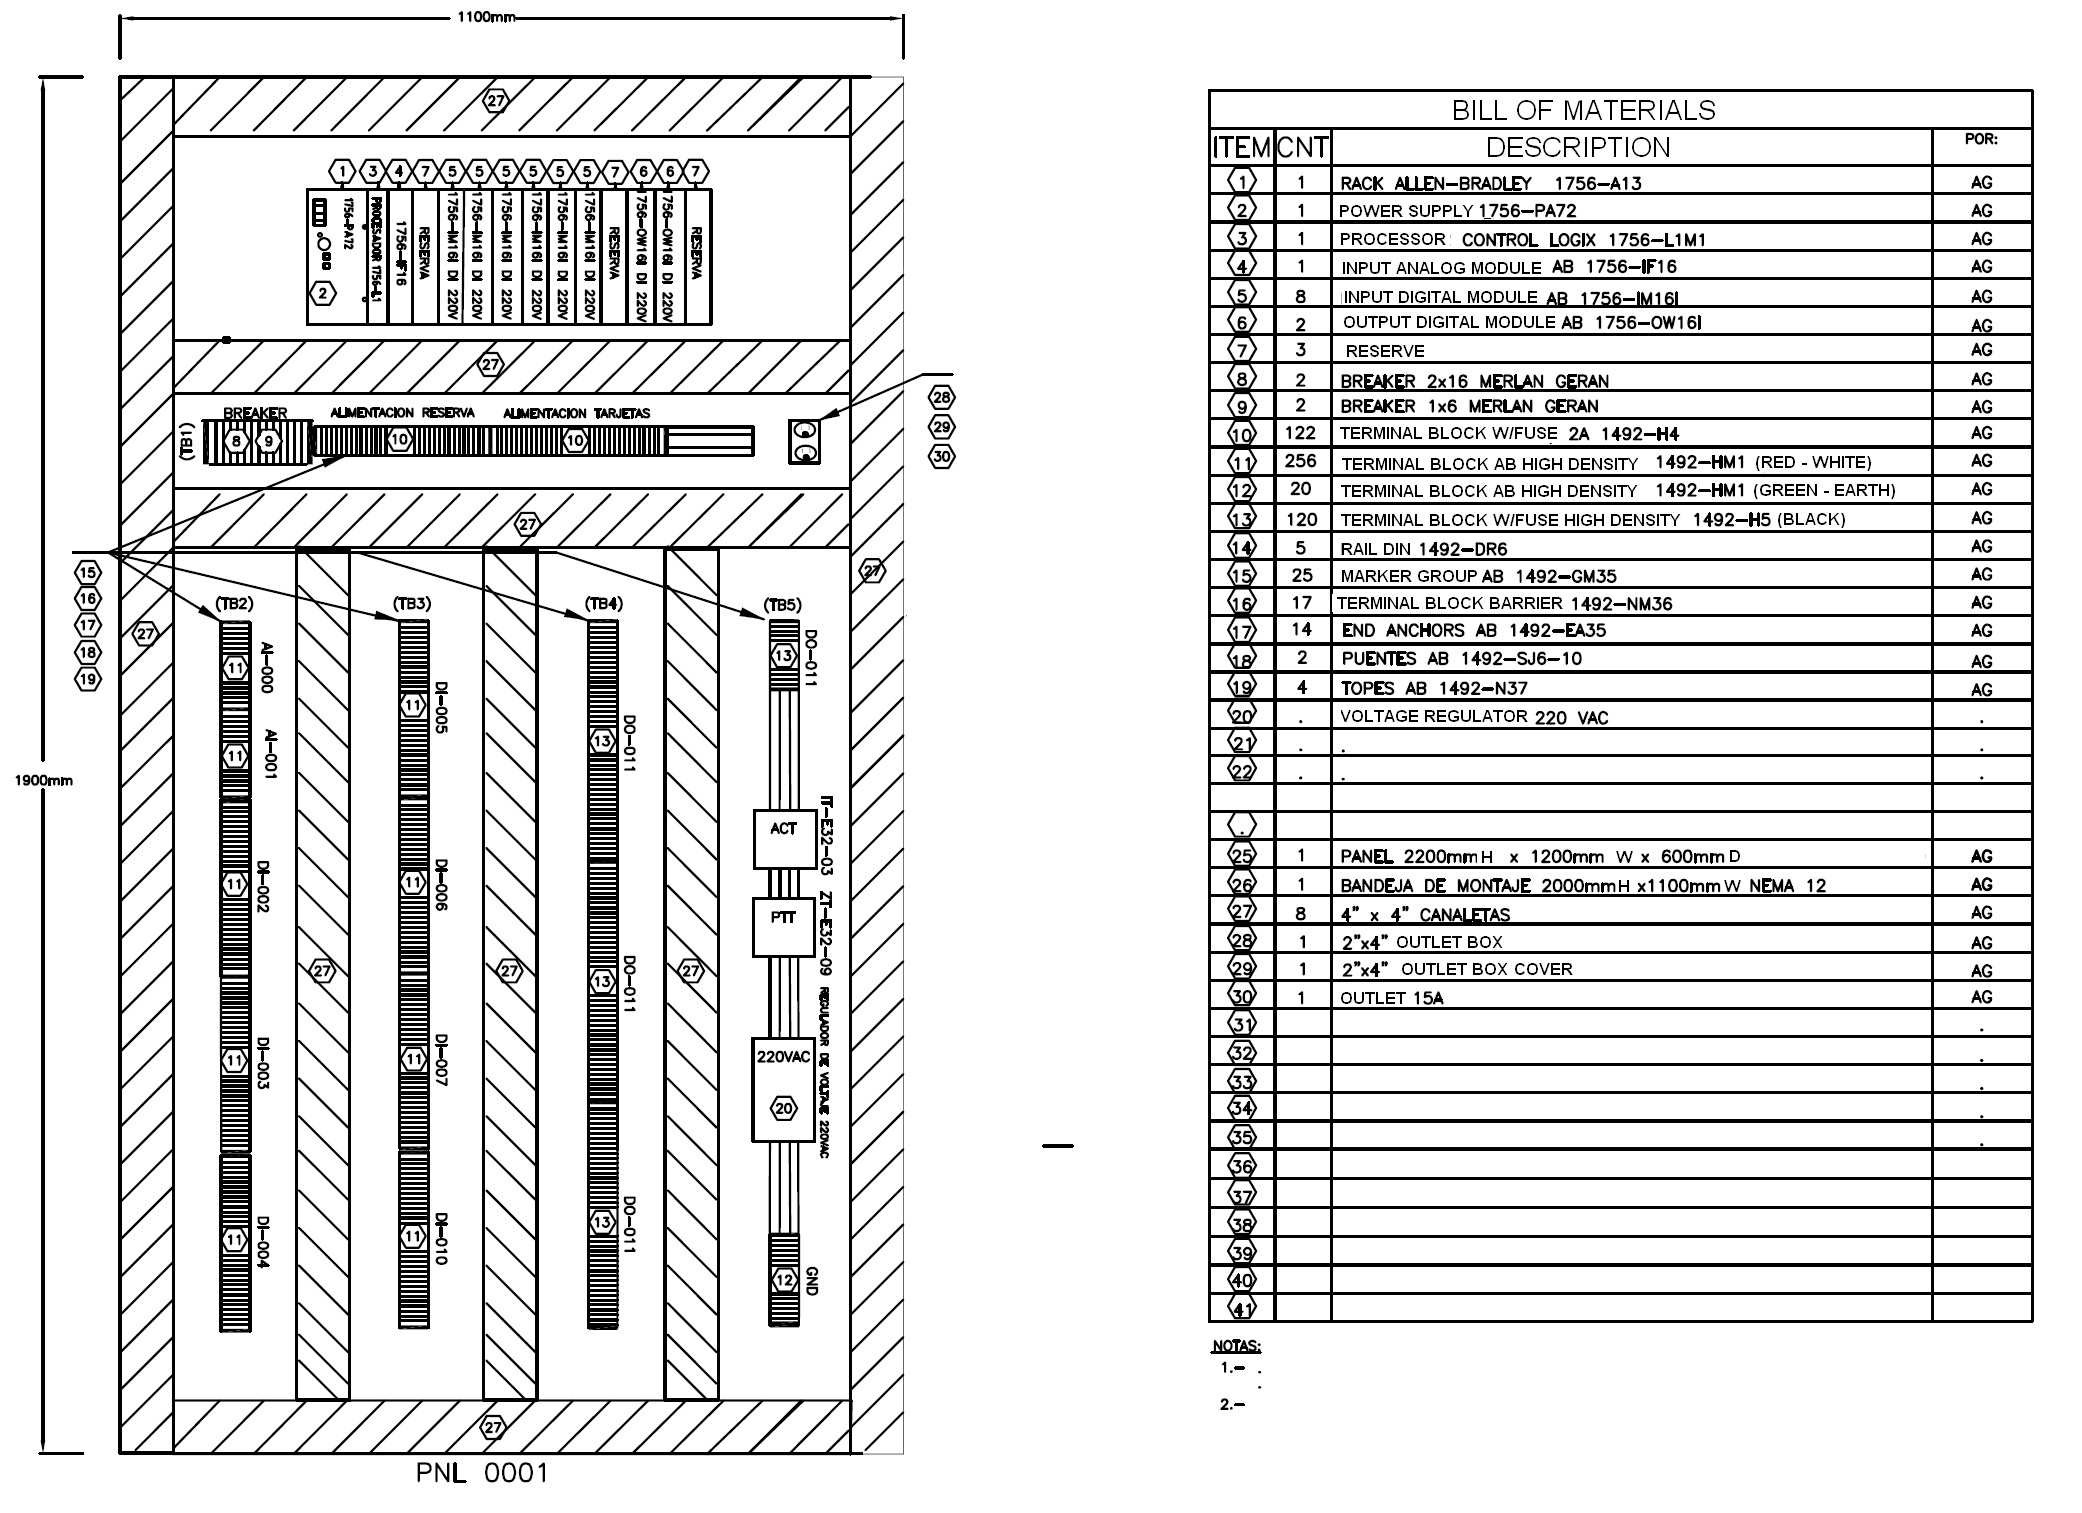 Elevator Ladder Logic Ivoiregion Diagram For Amazing Different Types Of Electrical Drawings Motif Everything You Need To Know About Wiring